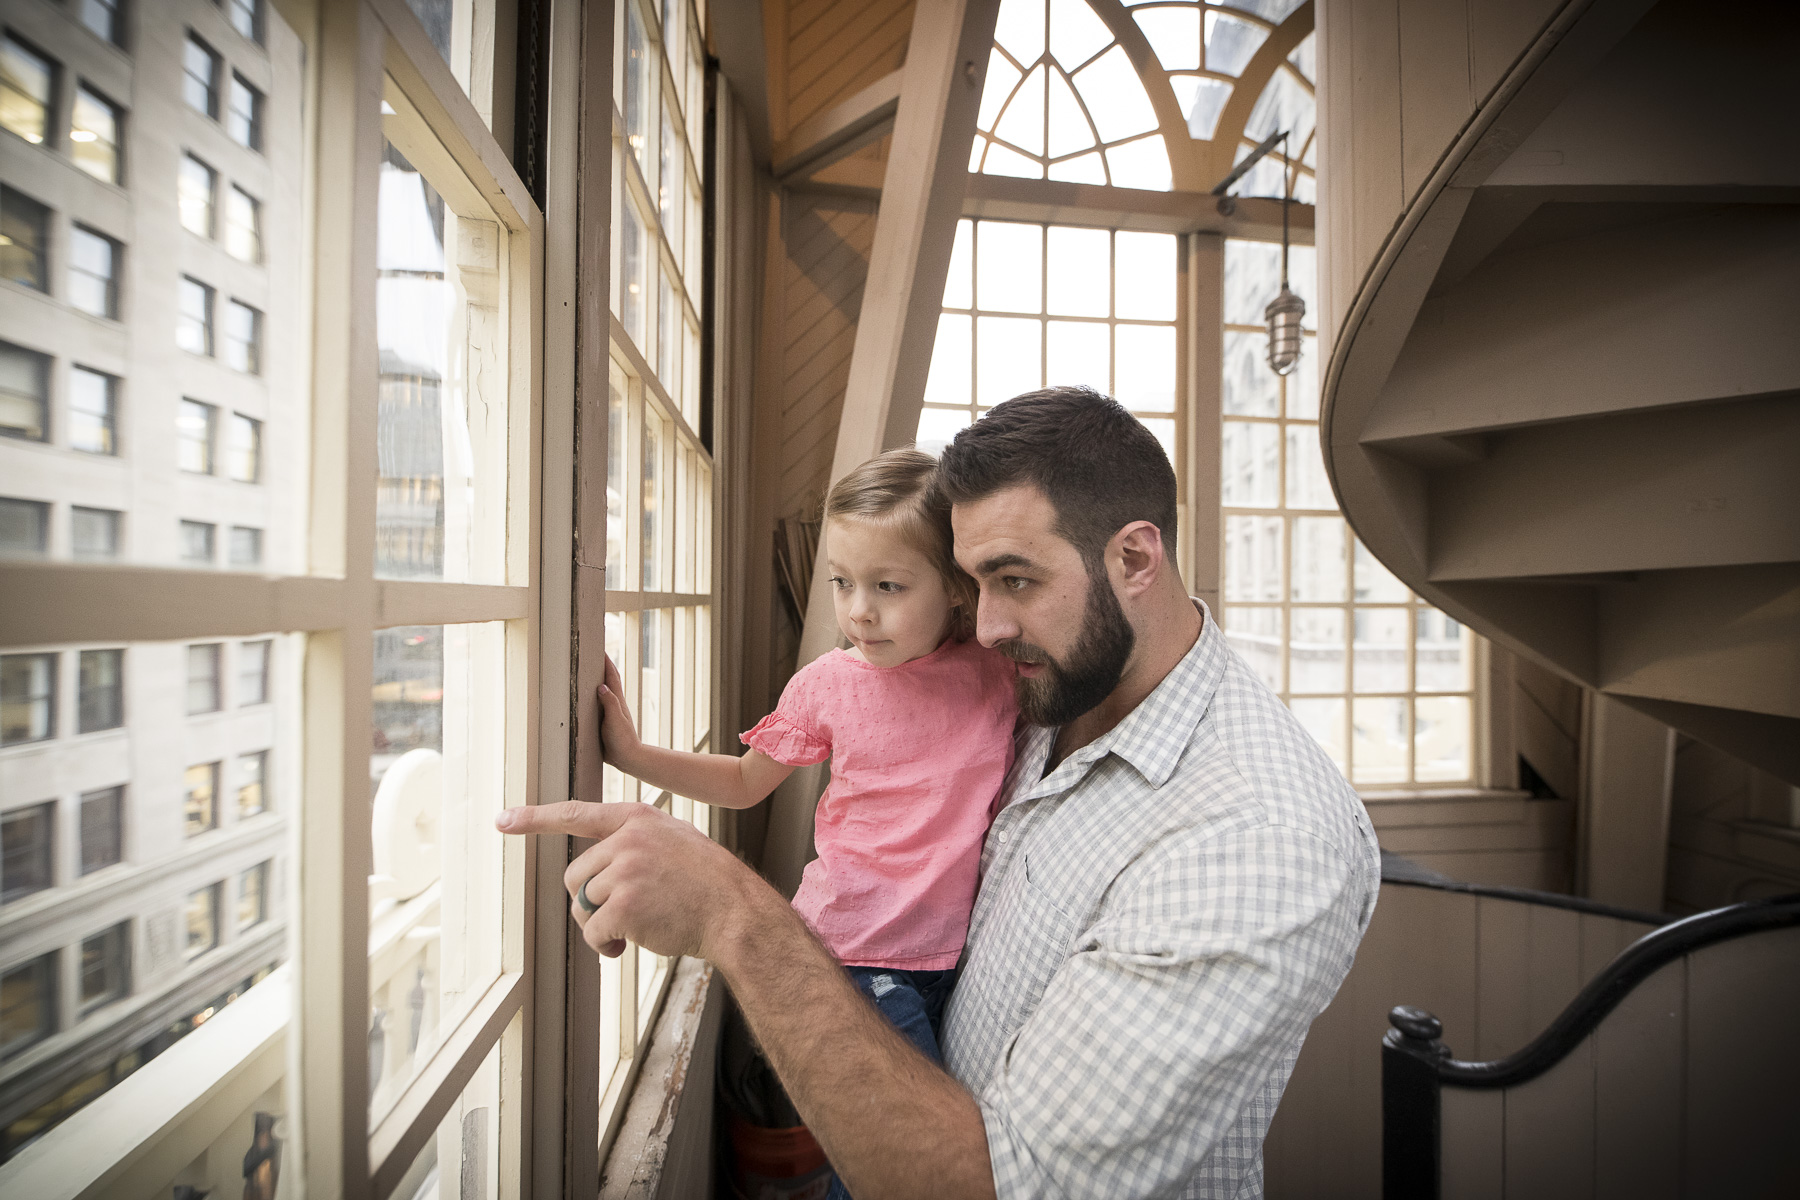 Adult man and toddler girl look out a lattice-work window.